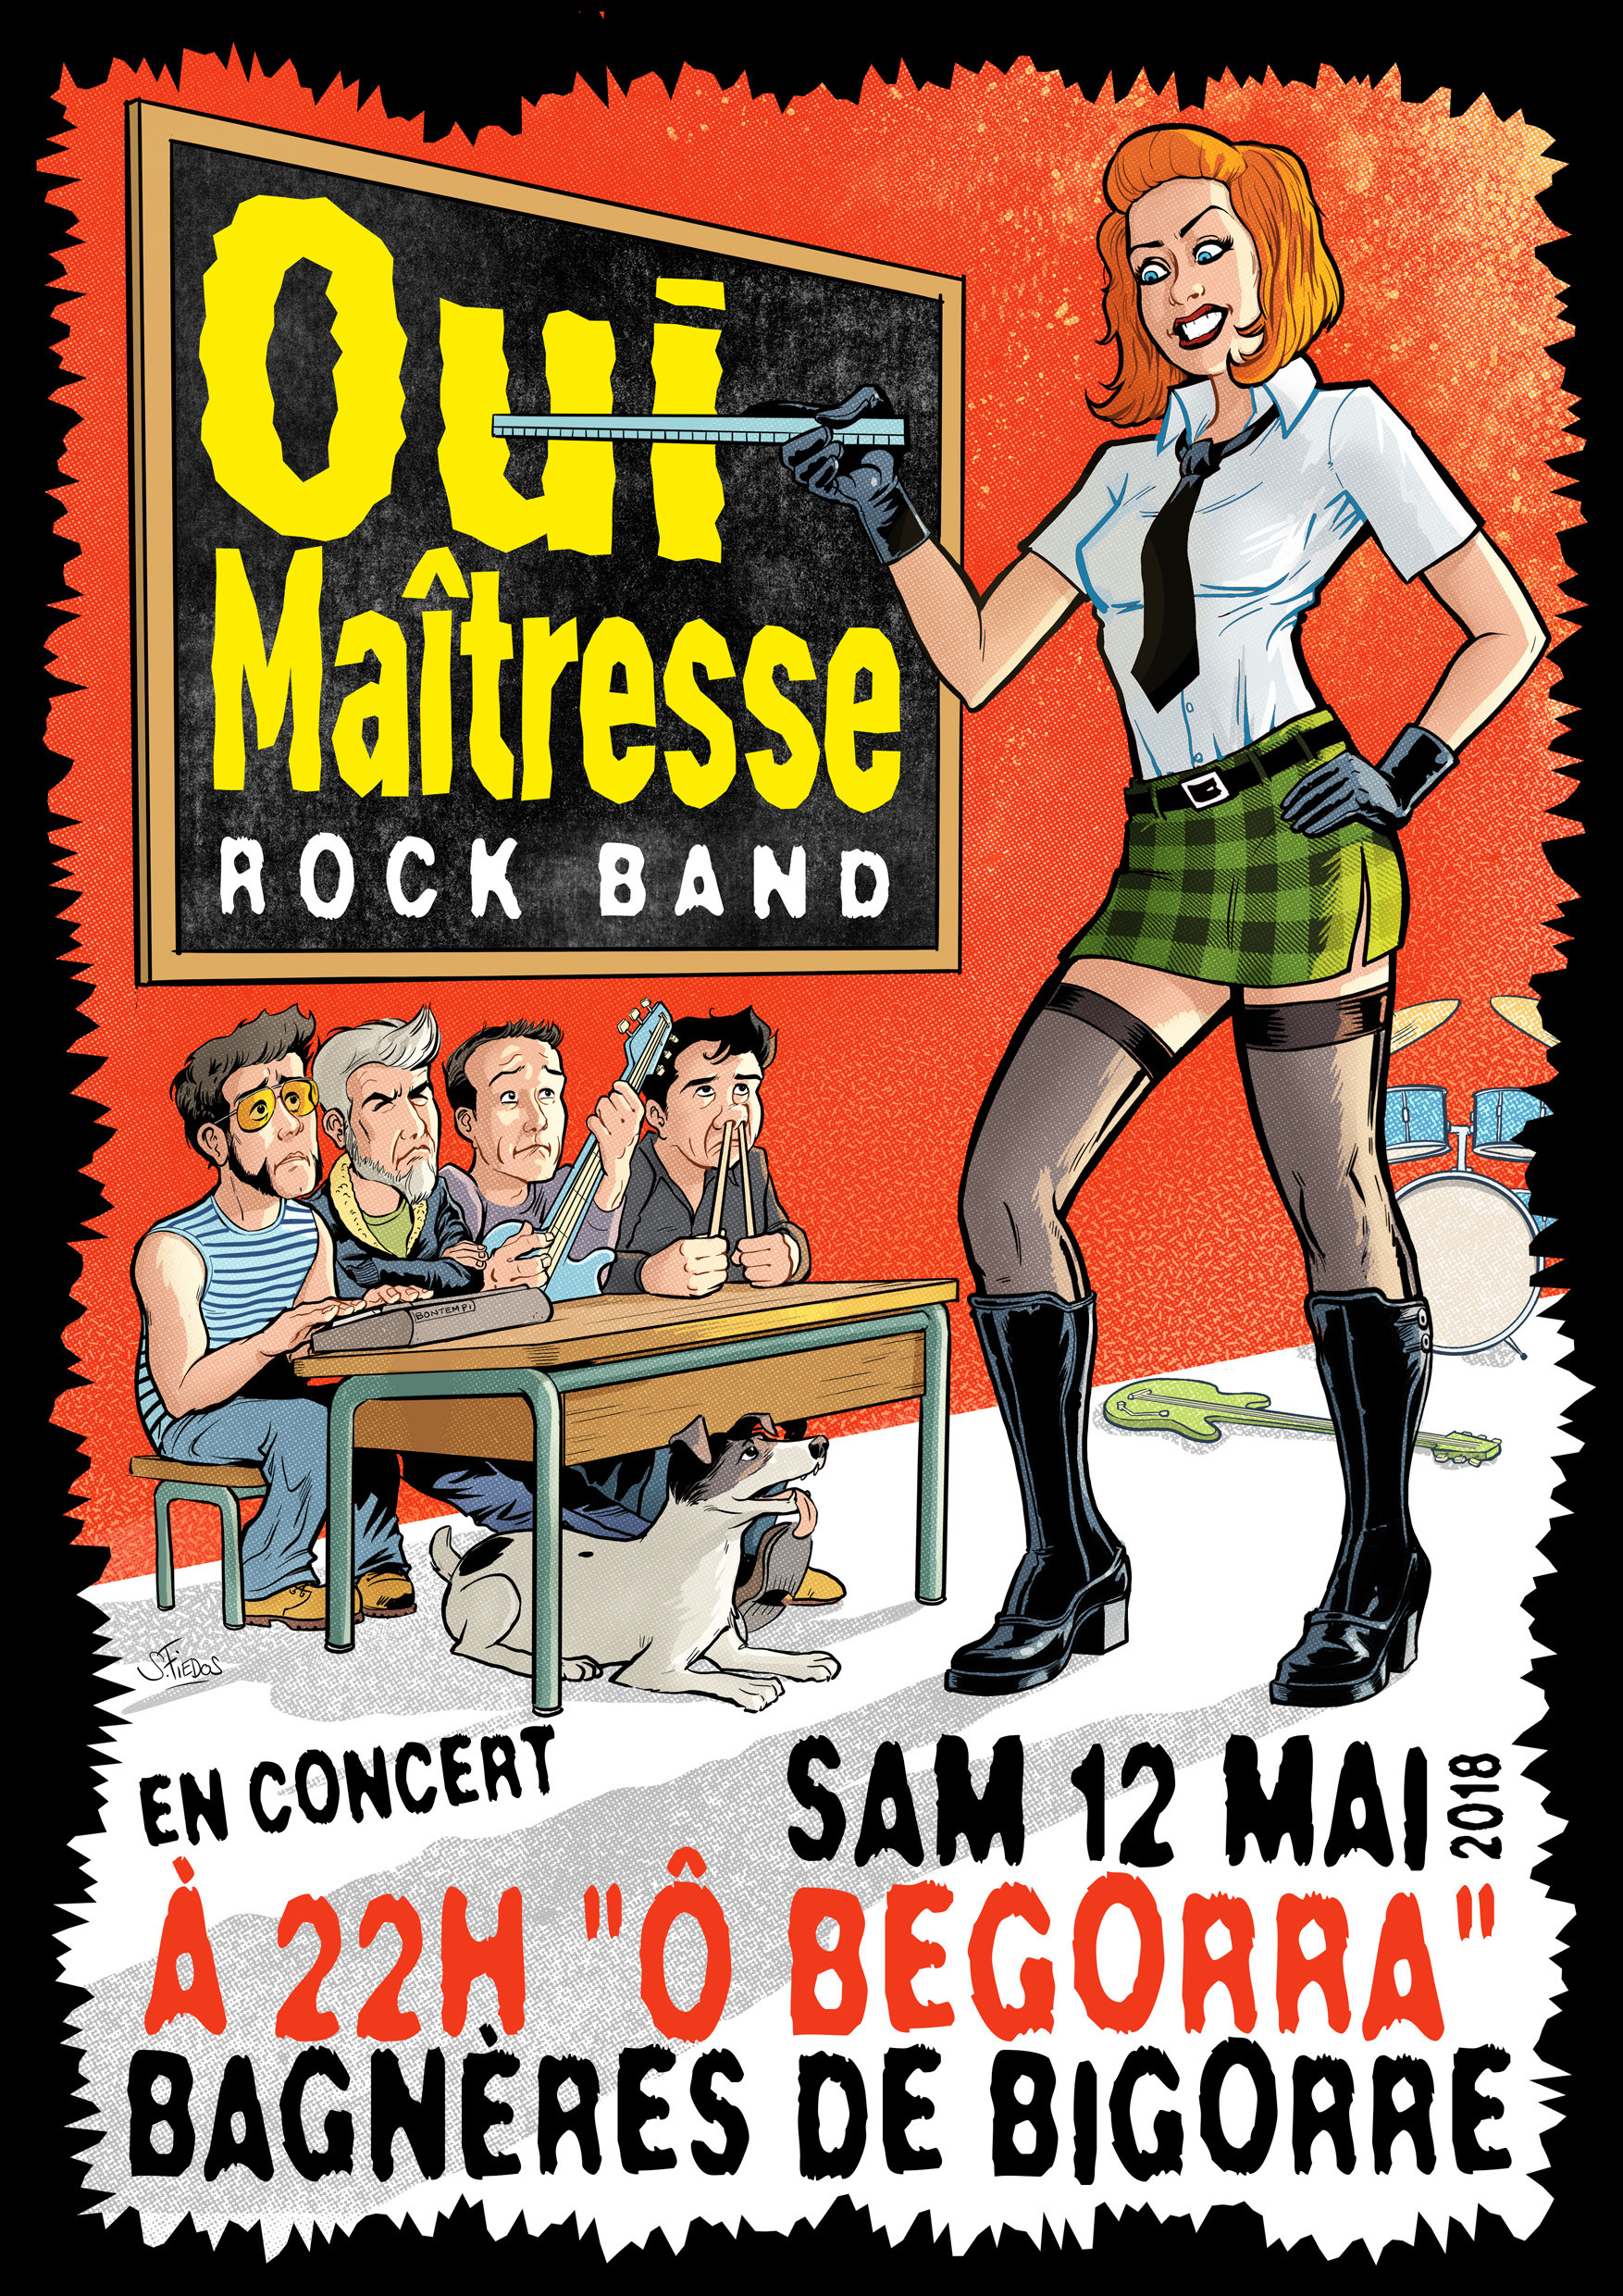 Serge fiedos oui maitresse rock concert poster by serge fiedos